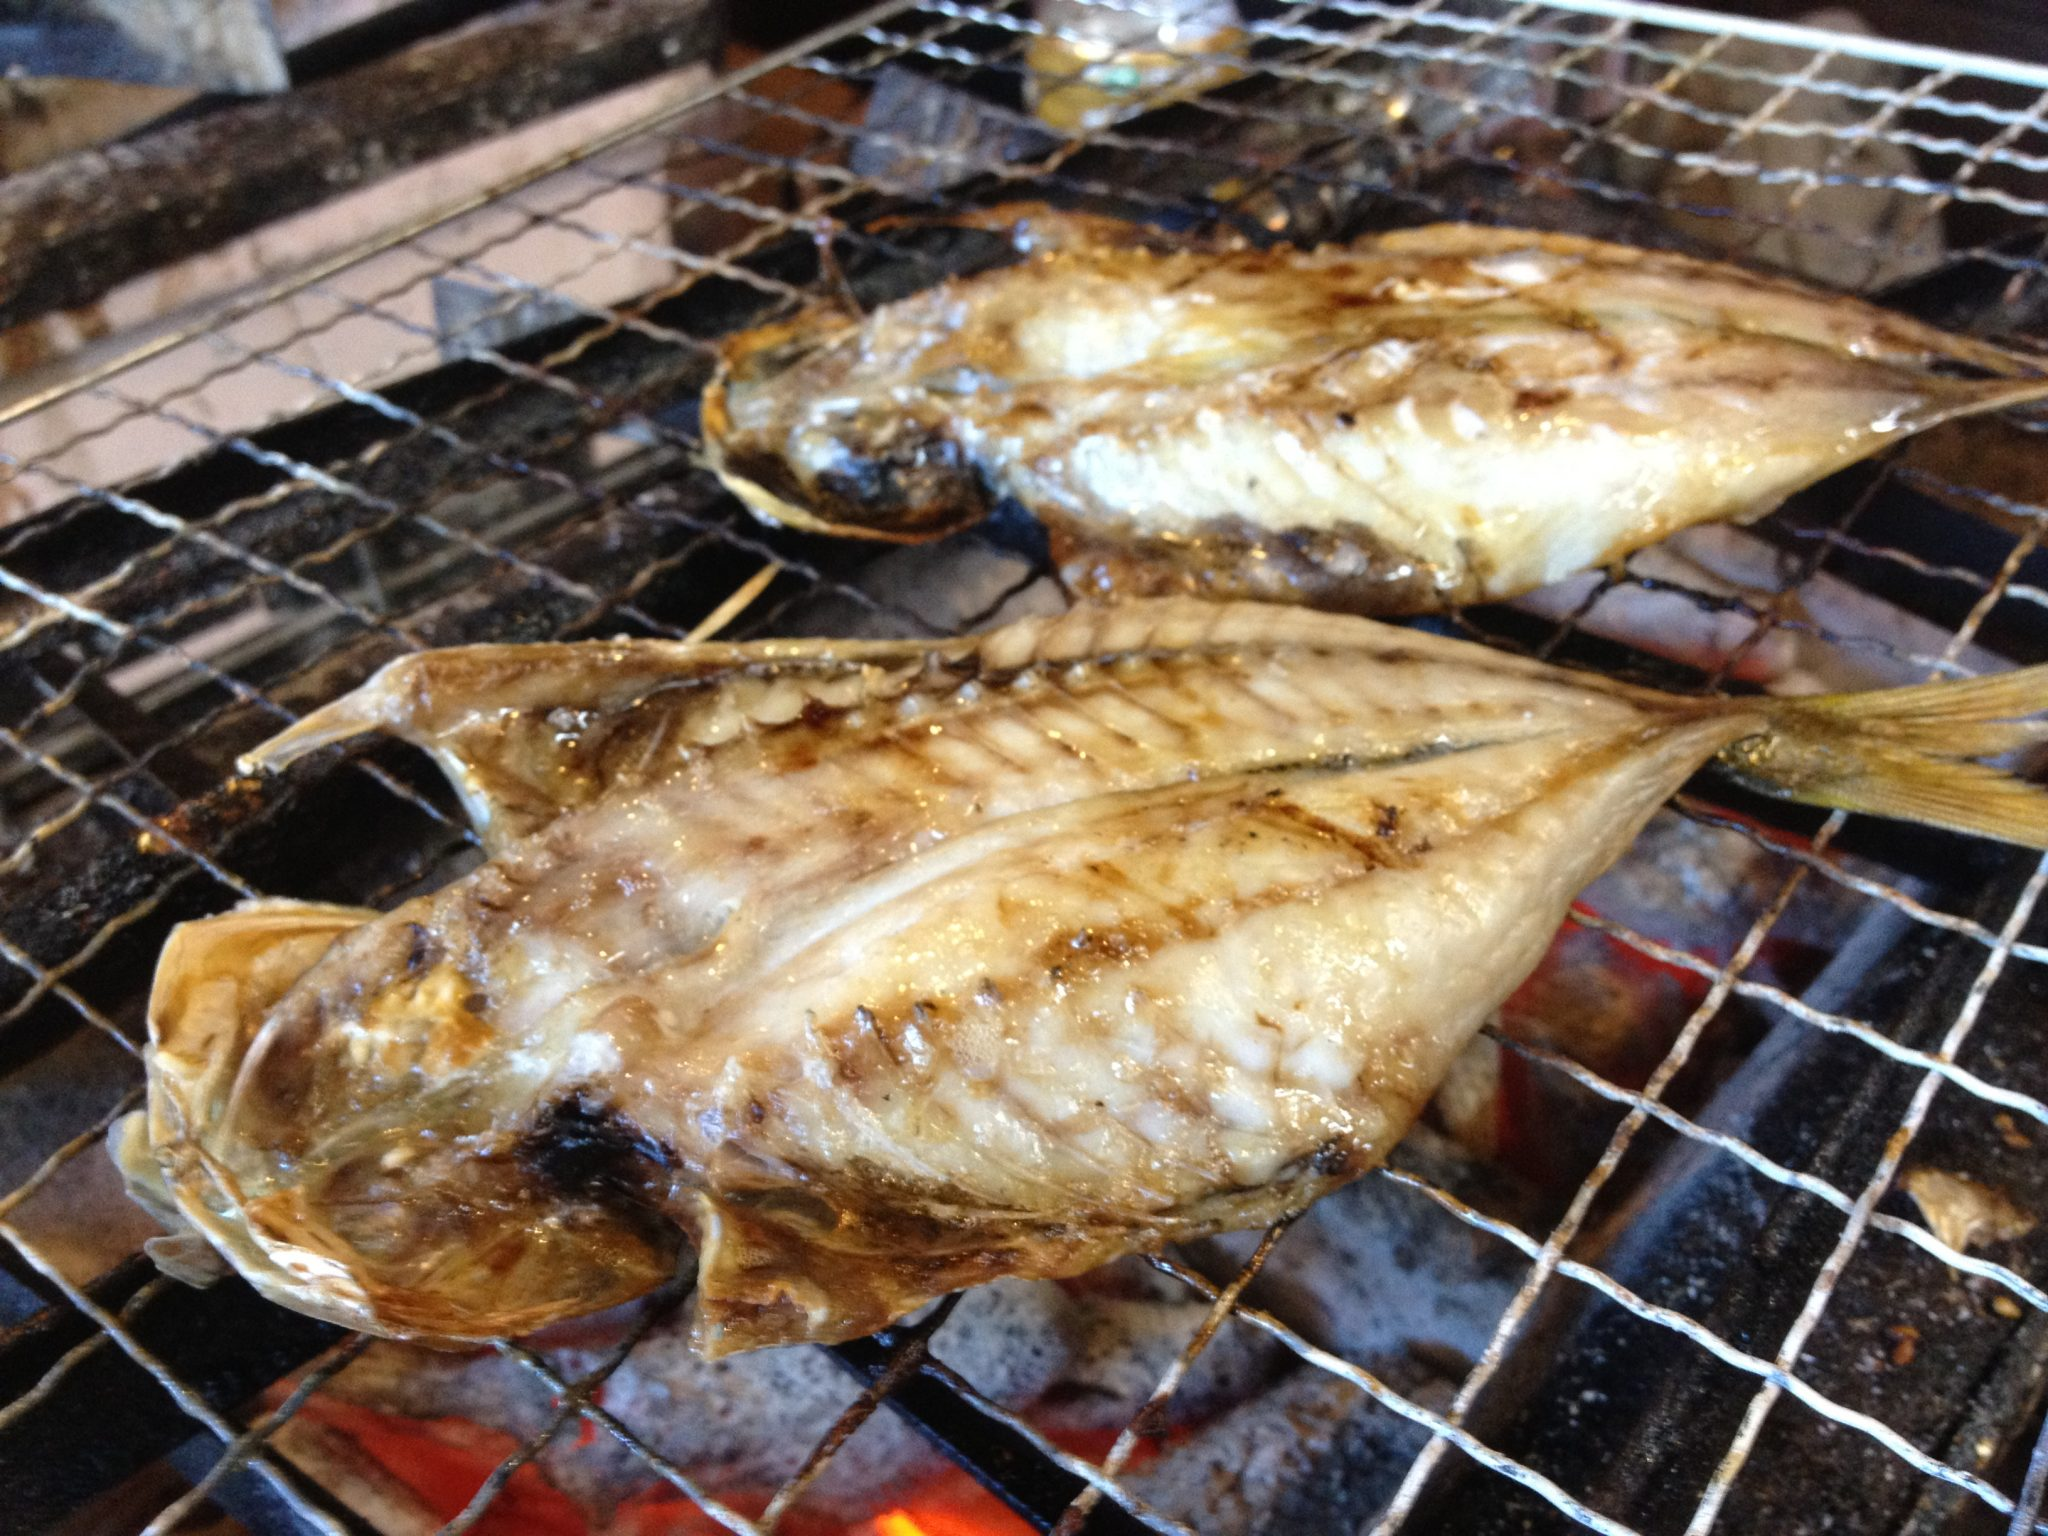 Himono on the grill at mampo